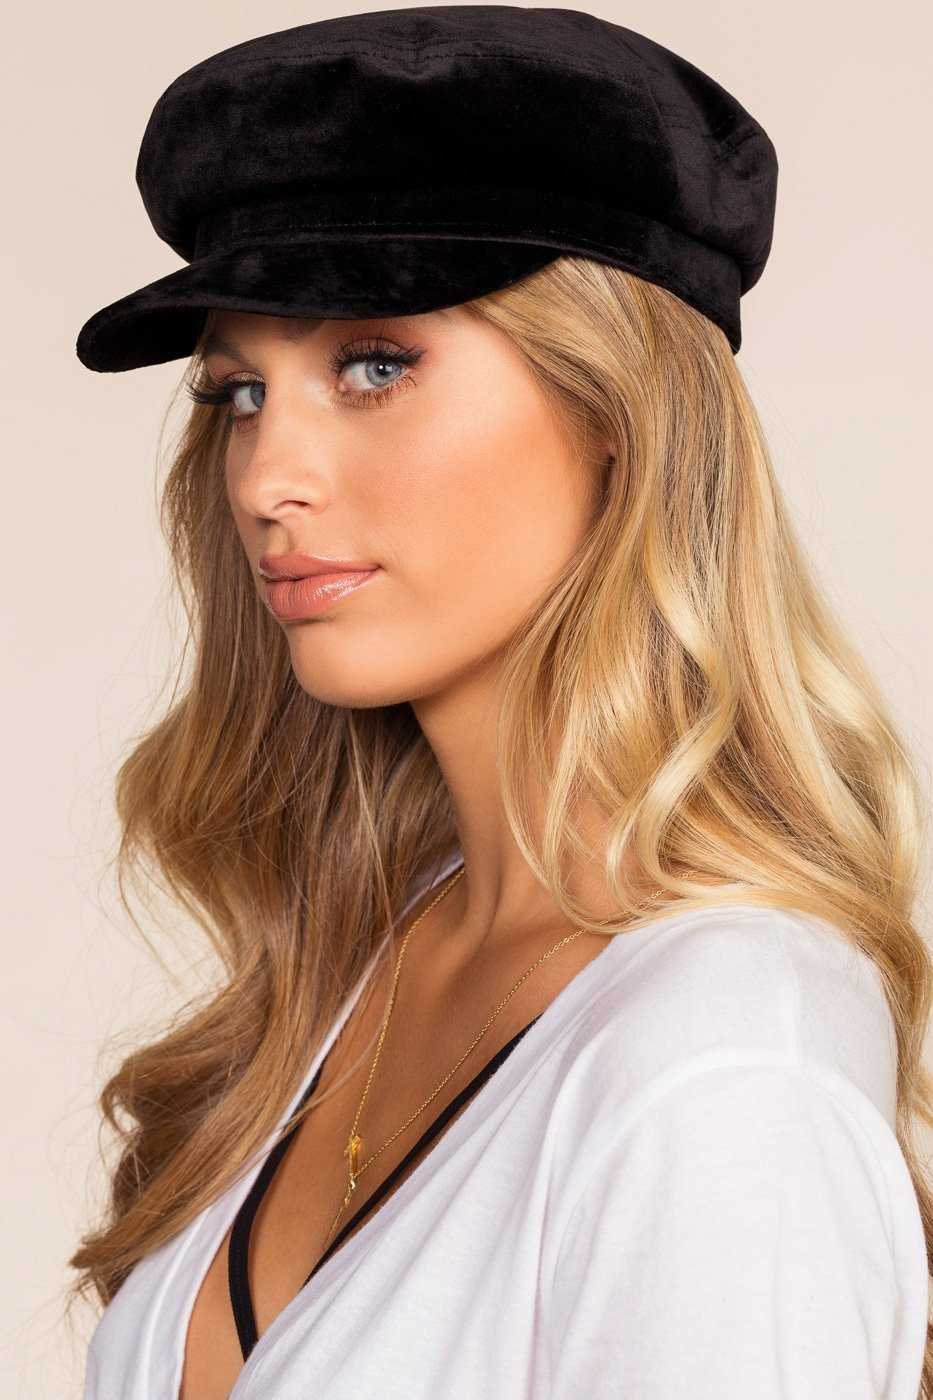 Accessories - Velveteen Fiddler Cap Accessories - Velveteen Fiddler Cap ... e38211880e6